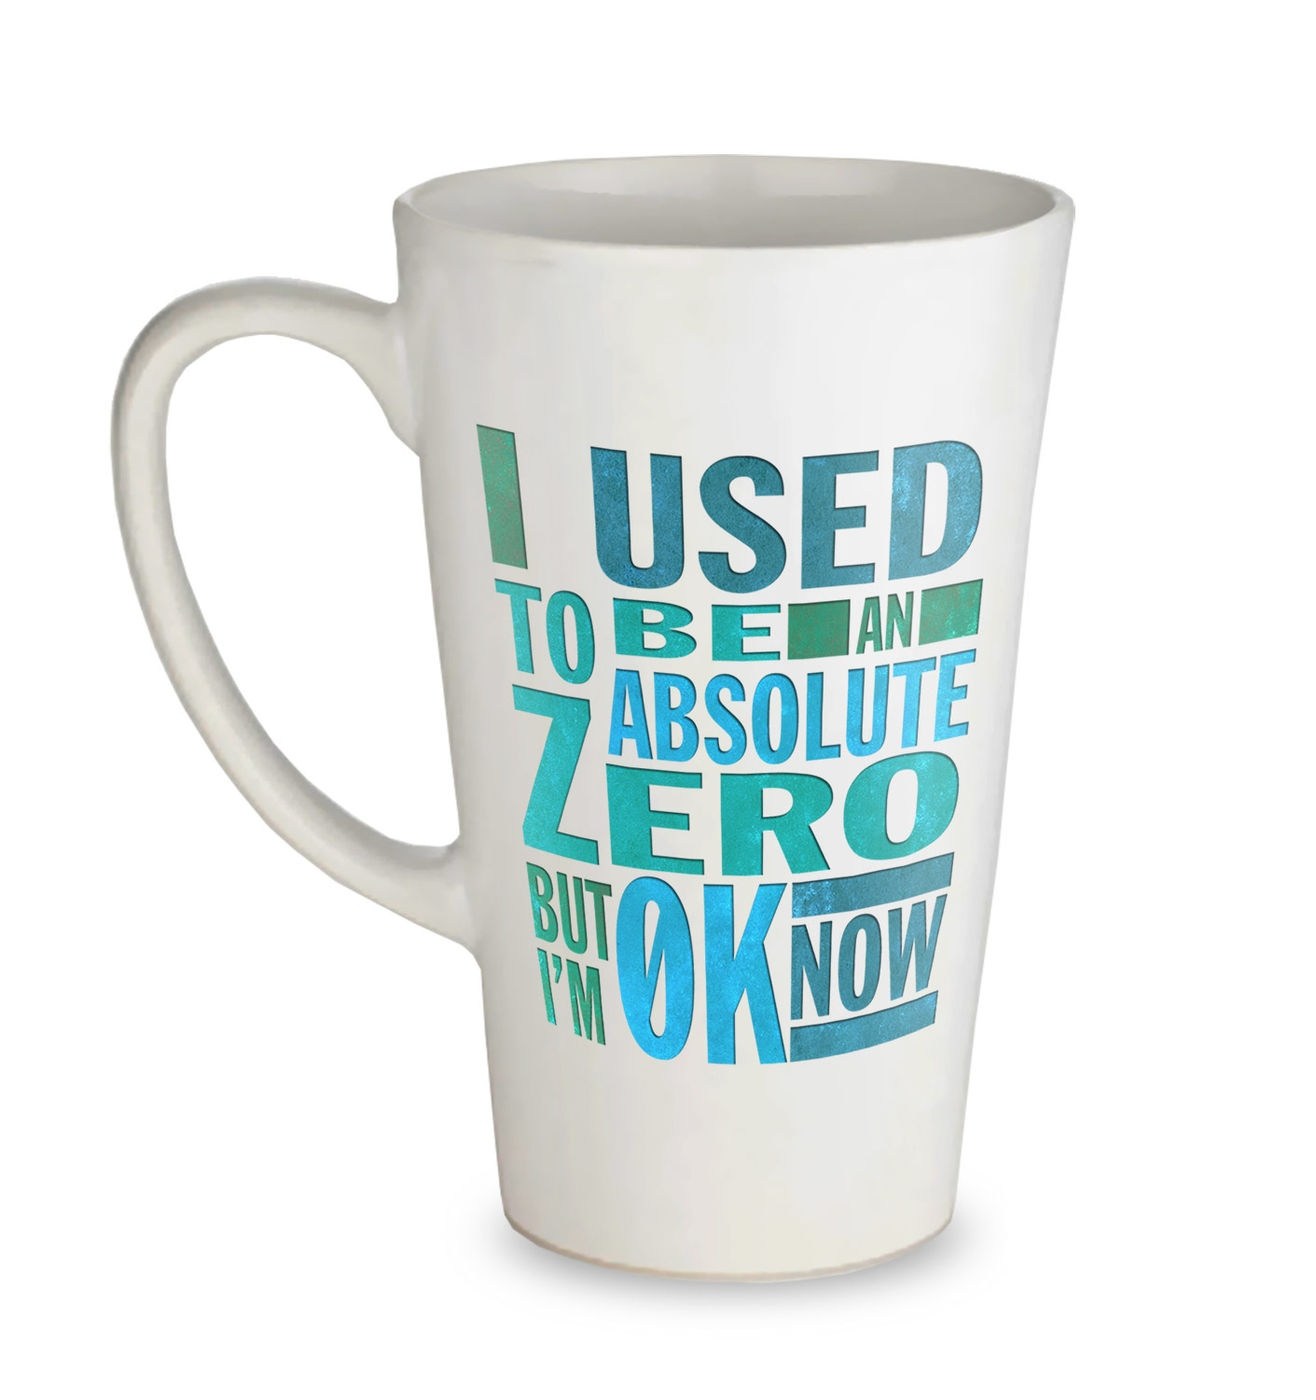 Absolute Zero 0K Now tall latte mug - funny science slogan coffee mug